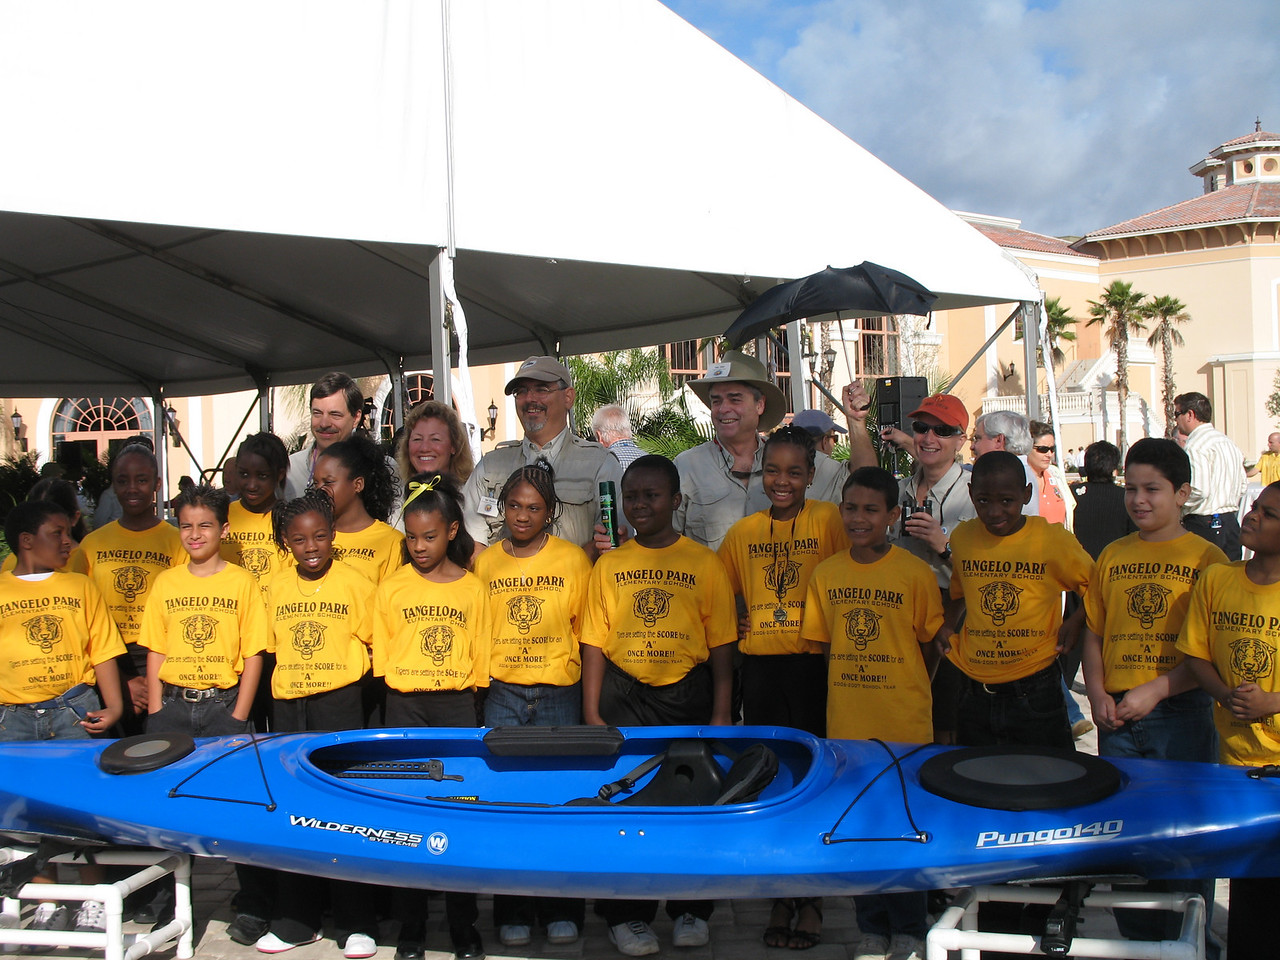 The expedition team and students from Tangelo Park